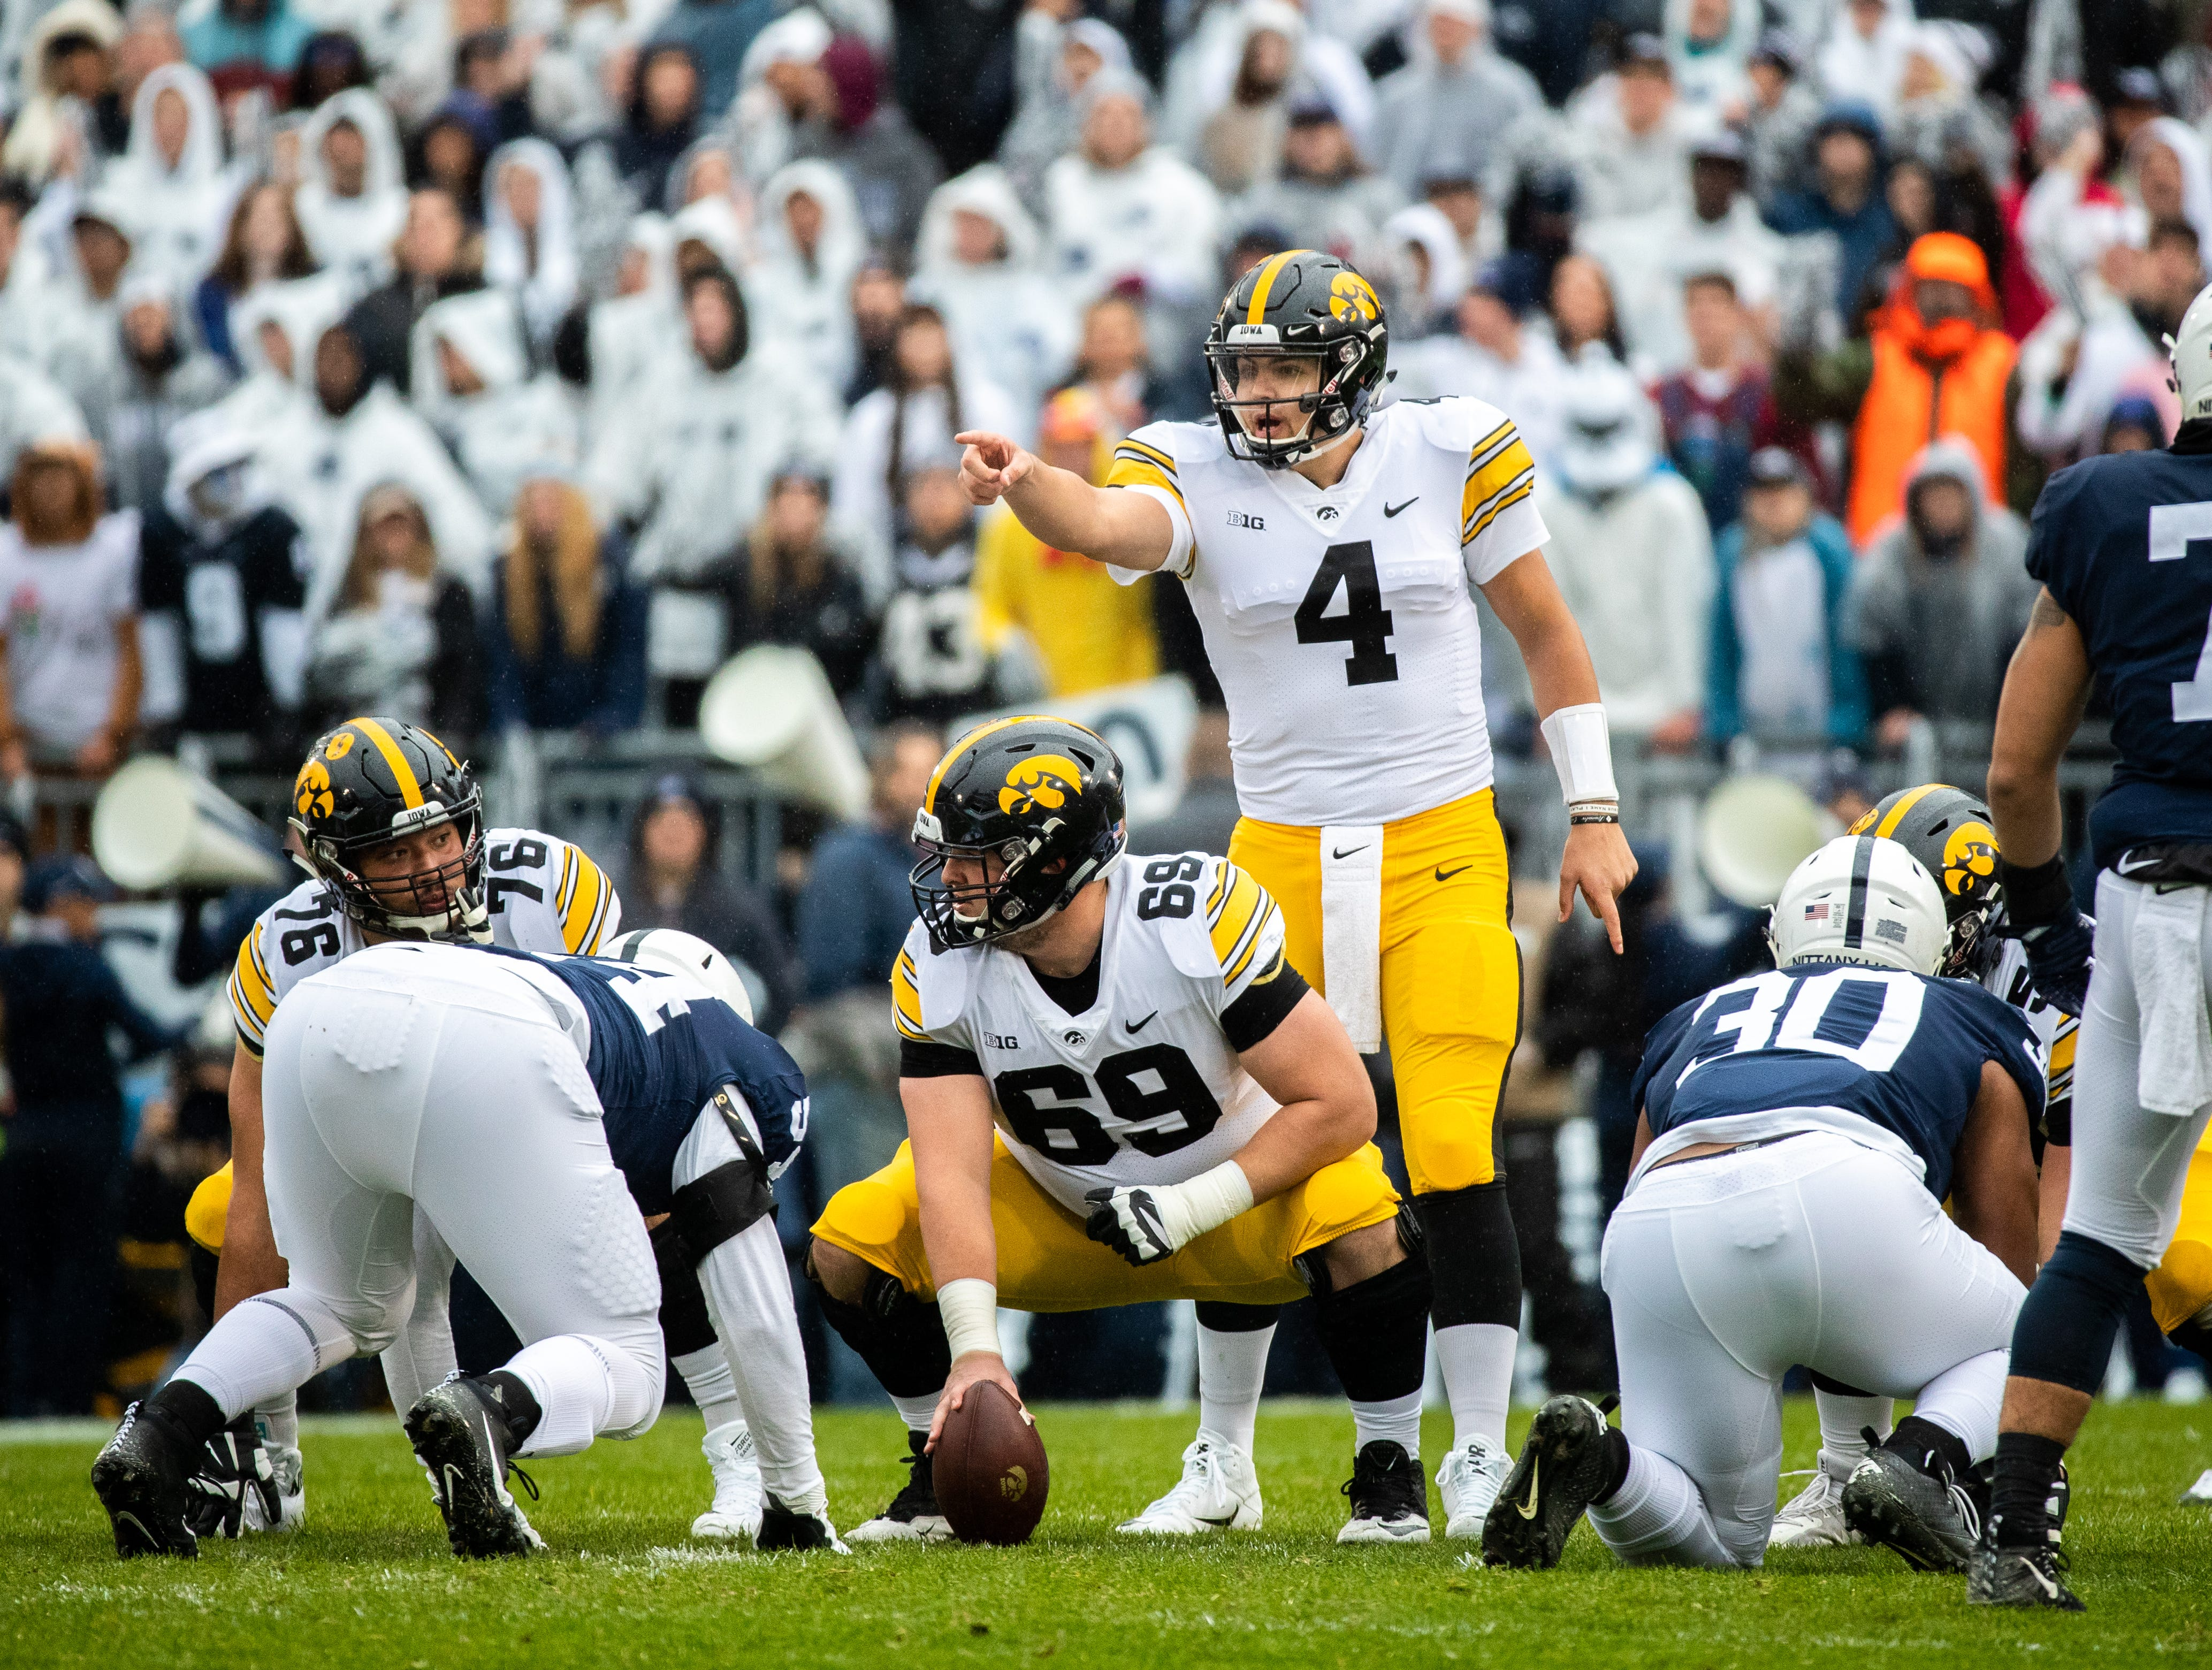 Nate Stanley #4 of the Iowa Hawkeyes before taking the snap from Keegan Render #69 of the Iowa Hawkeyes during a game against the Penn State Nittany Lions at of Beaver Stadium on Saturday, October 27, 2018, in State College, Pennsylvania.outside of Beaver Stadium on Saturday, October 27, 2018, in State College, Pennsylvania.